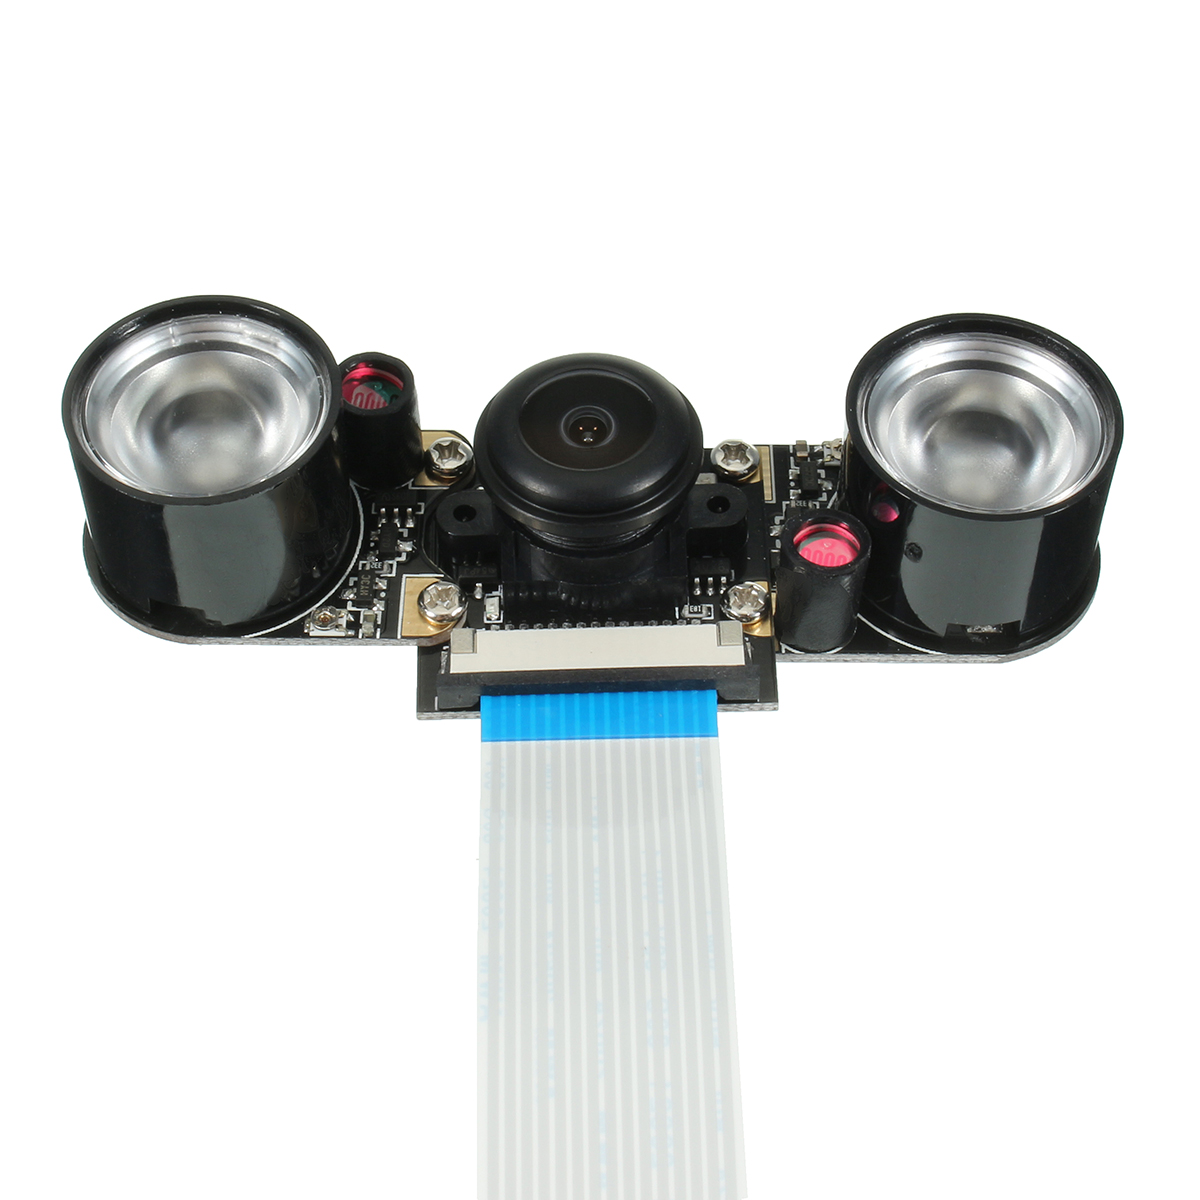 5 MP Wide Angle Fisheye Lens Night Vision Camera + 2PCS IR Sensor LED Light For Raspberry Pi 2/3/Model B